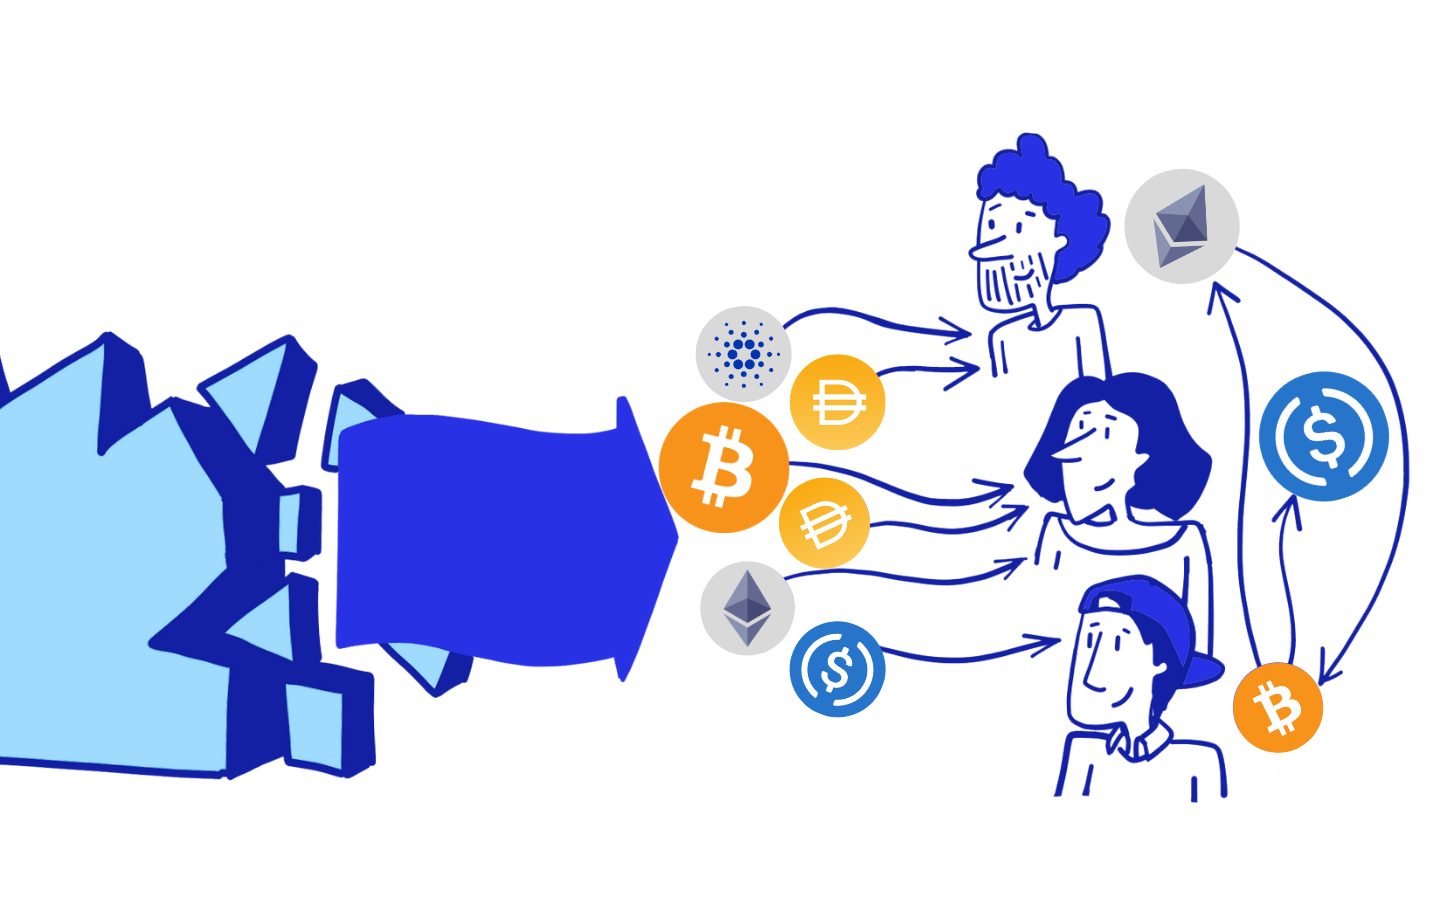 Share crypto with colleagues, contributors, friends